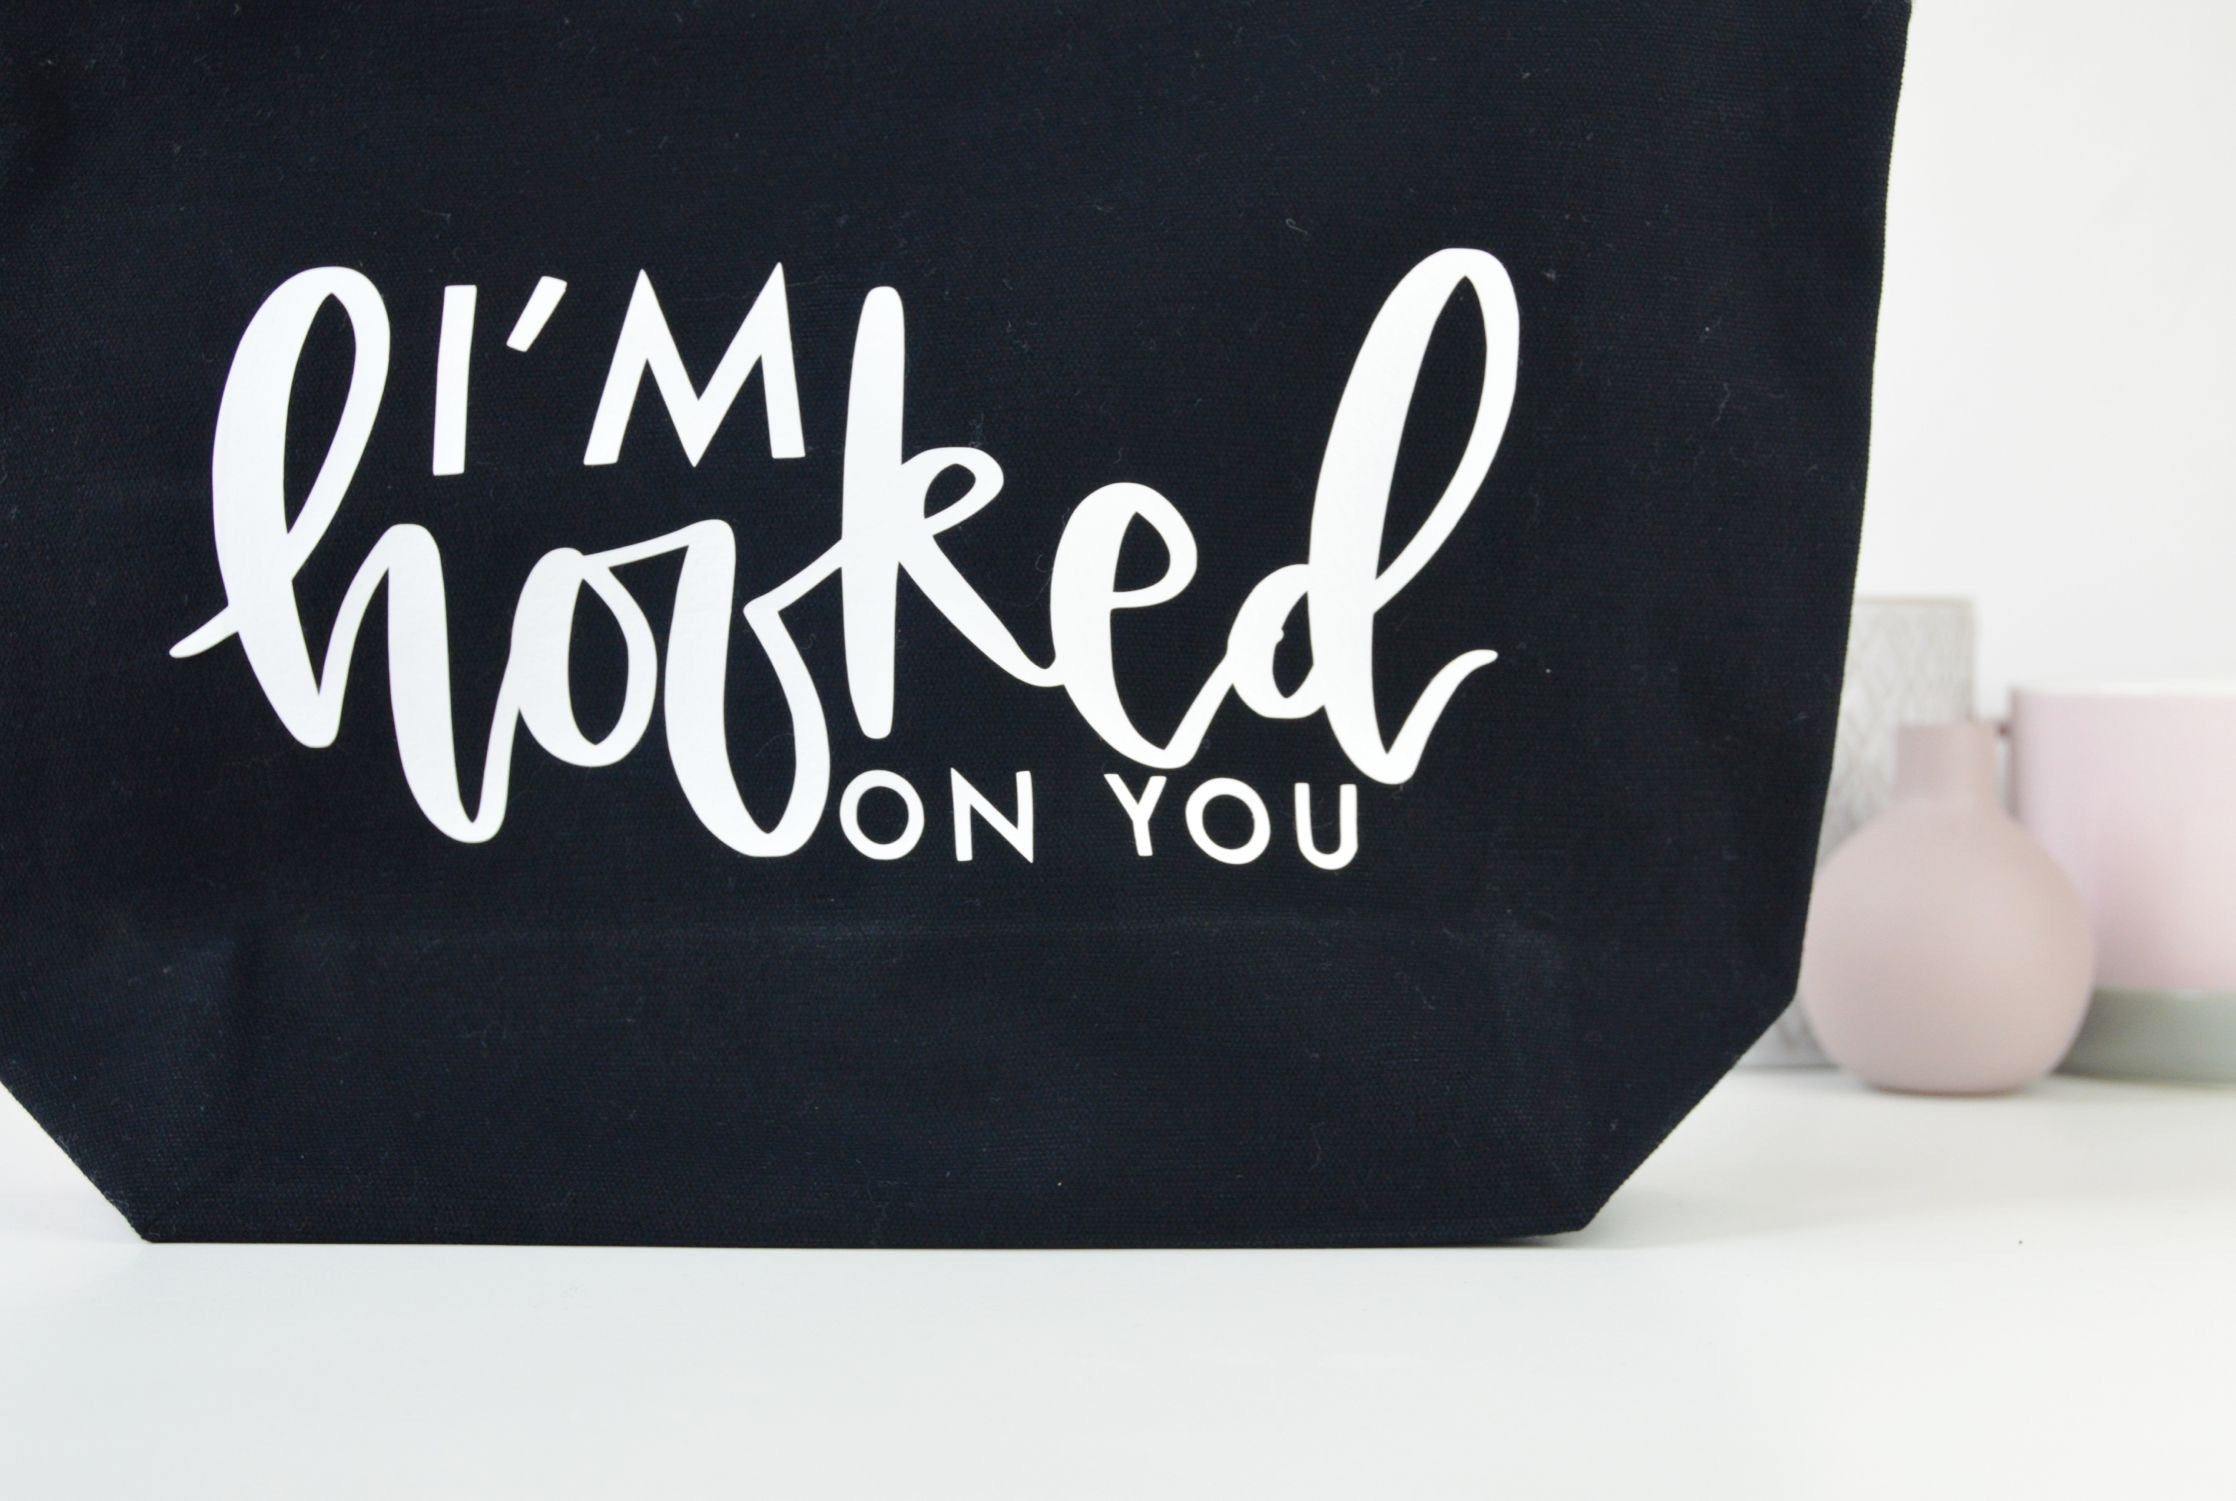 'I'm Hooked On You' Knitting Pouch - You Make My Dreams